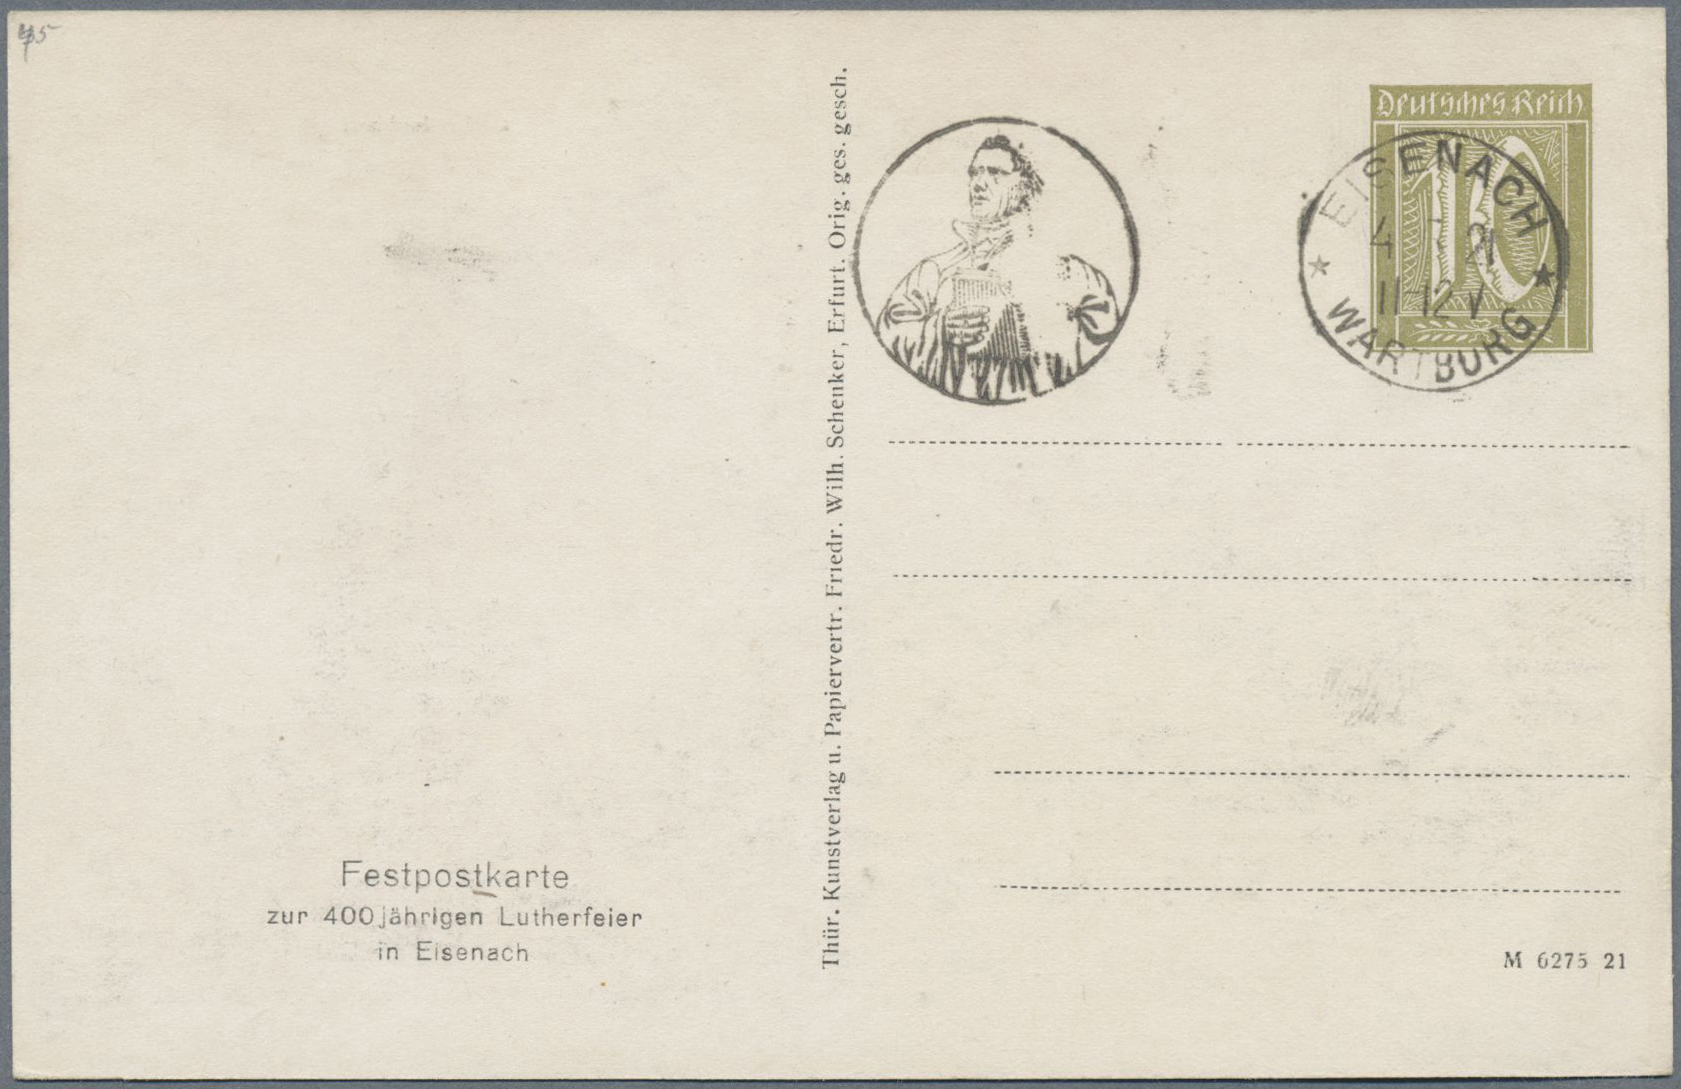 Lot 11381C - thematik: luther  -  Auktionshaus Christoph Gärtner GmbH & Co. KG Single lots Philately Overseas & Europe. Auction #39 Day 4